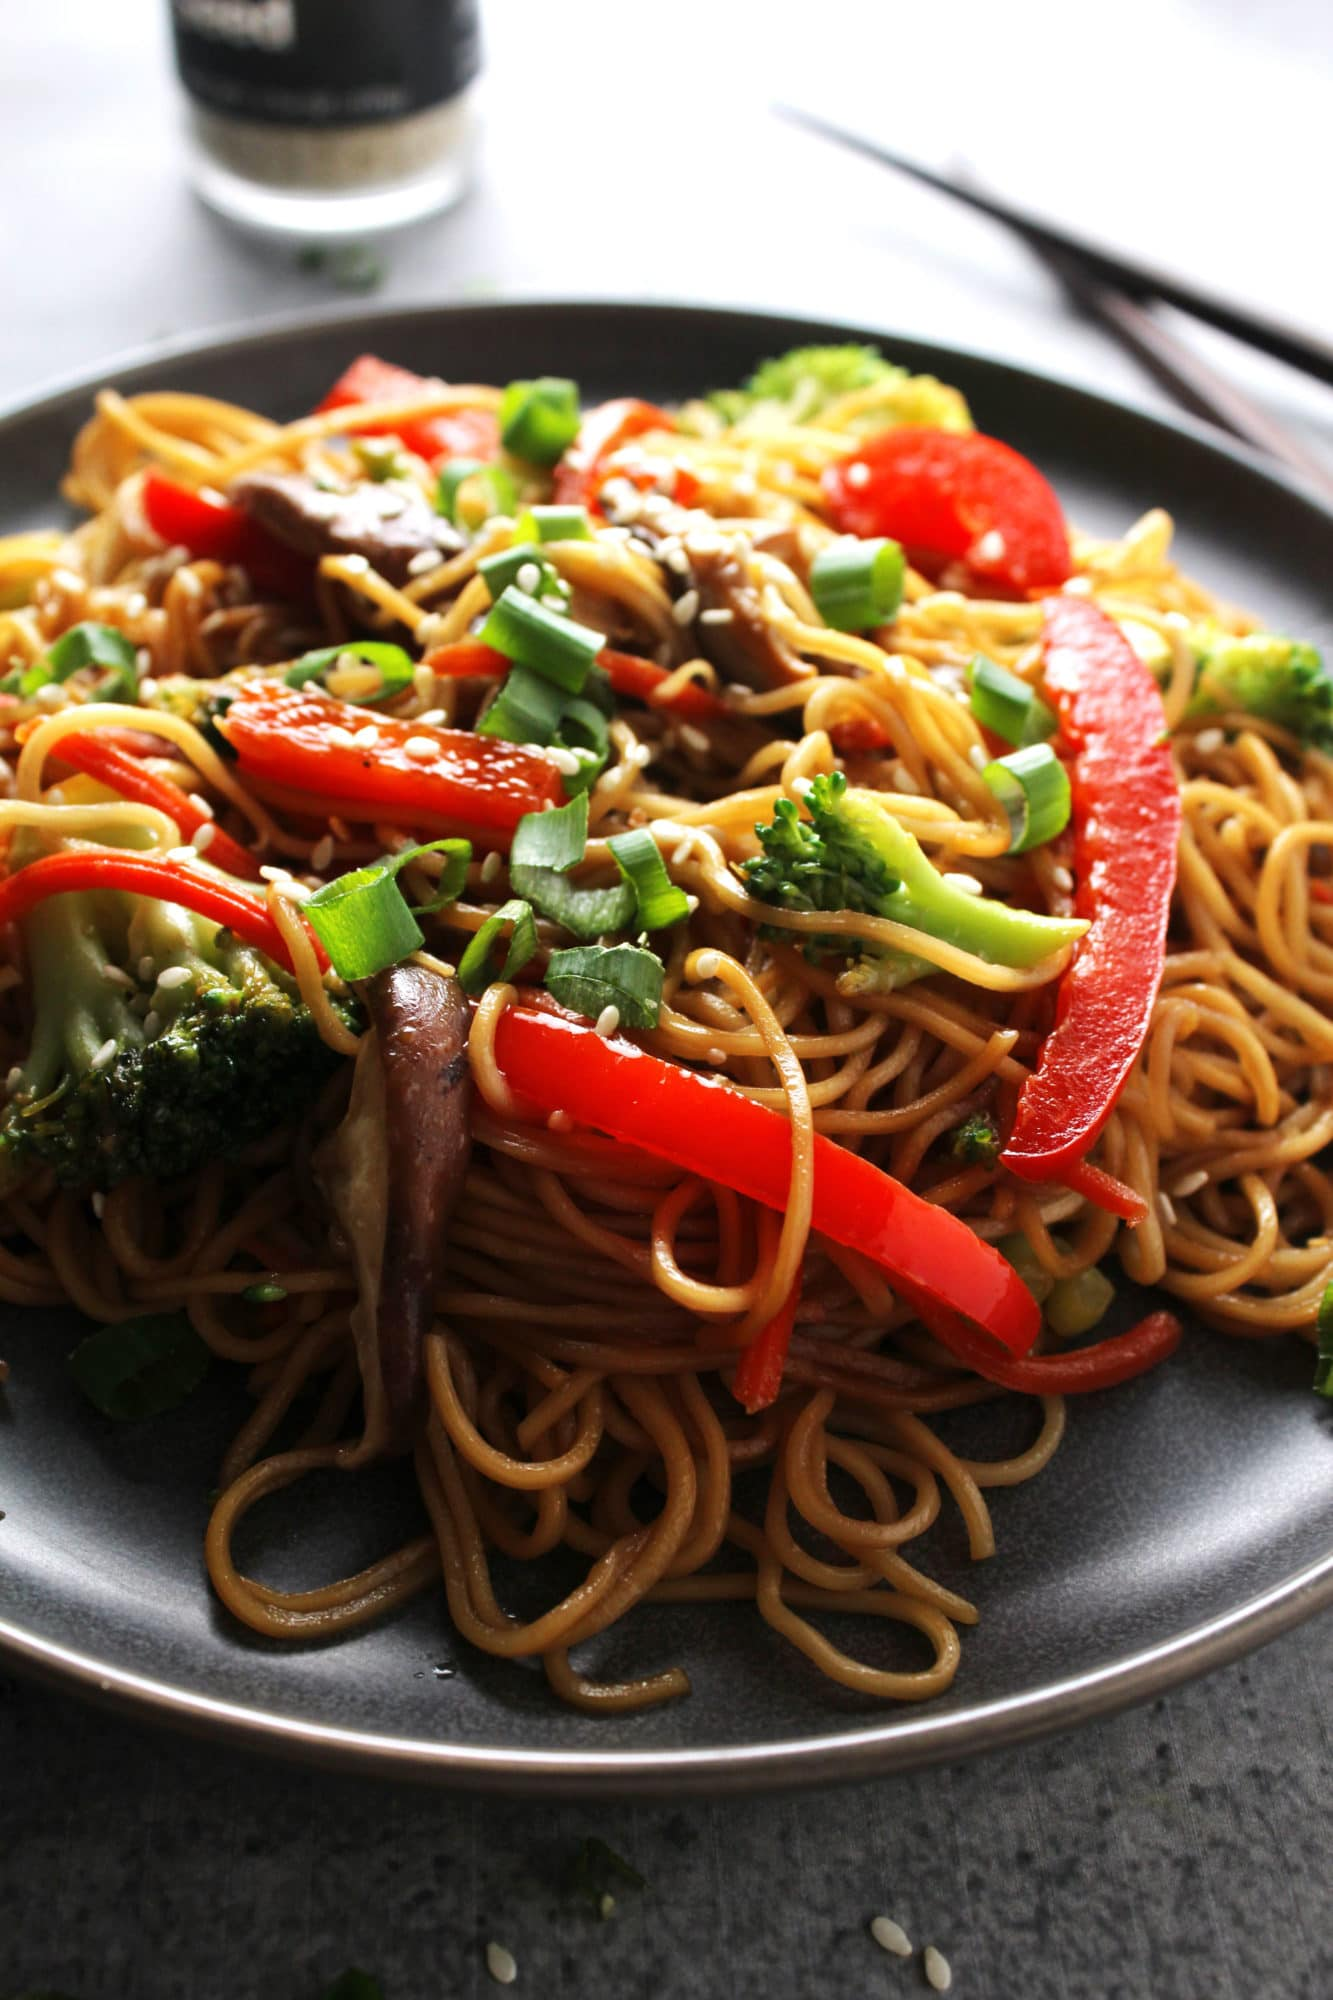 Vegetable Lo Mein is an easy no fuss, no mess, recipe perfect for busy times when you want take-out, but crave a healthier option | via @AimeeMarLiving | #Vegetable #LoMein